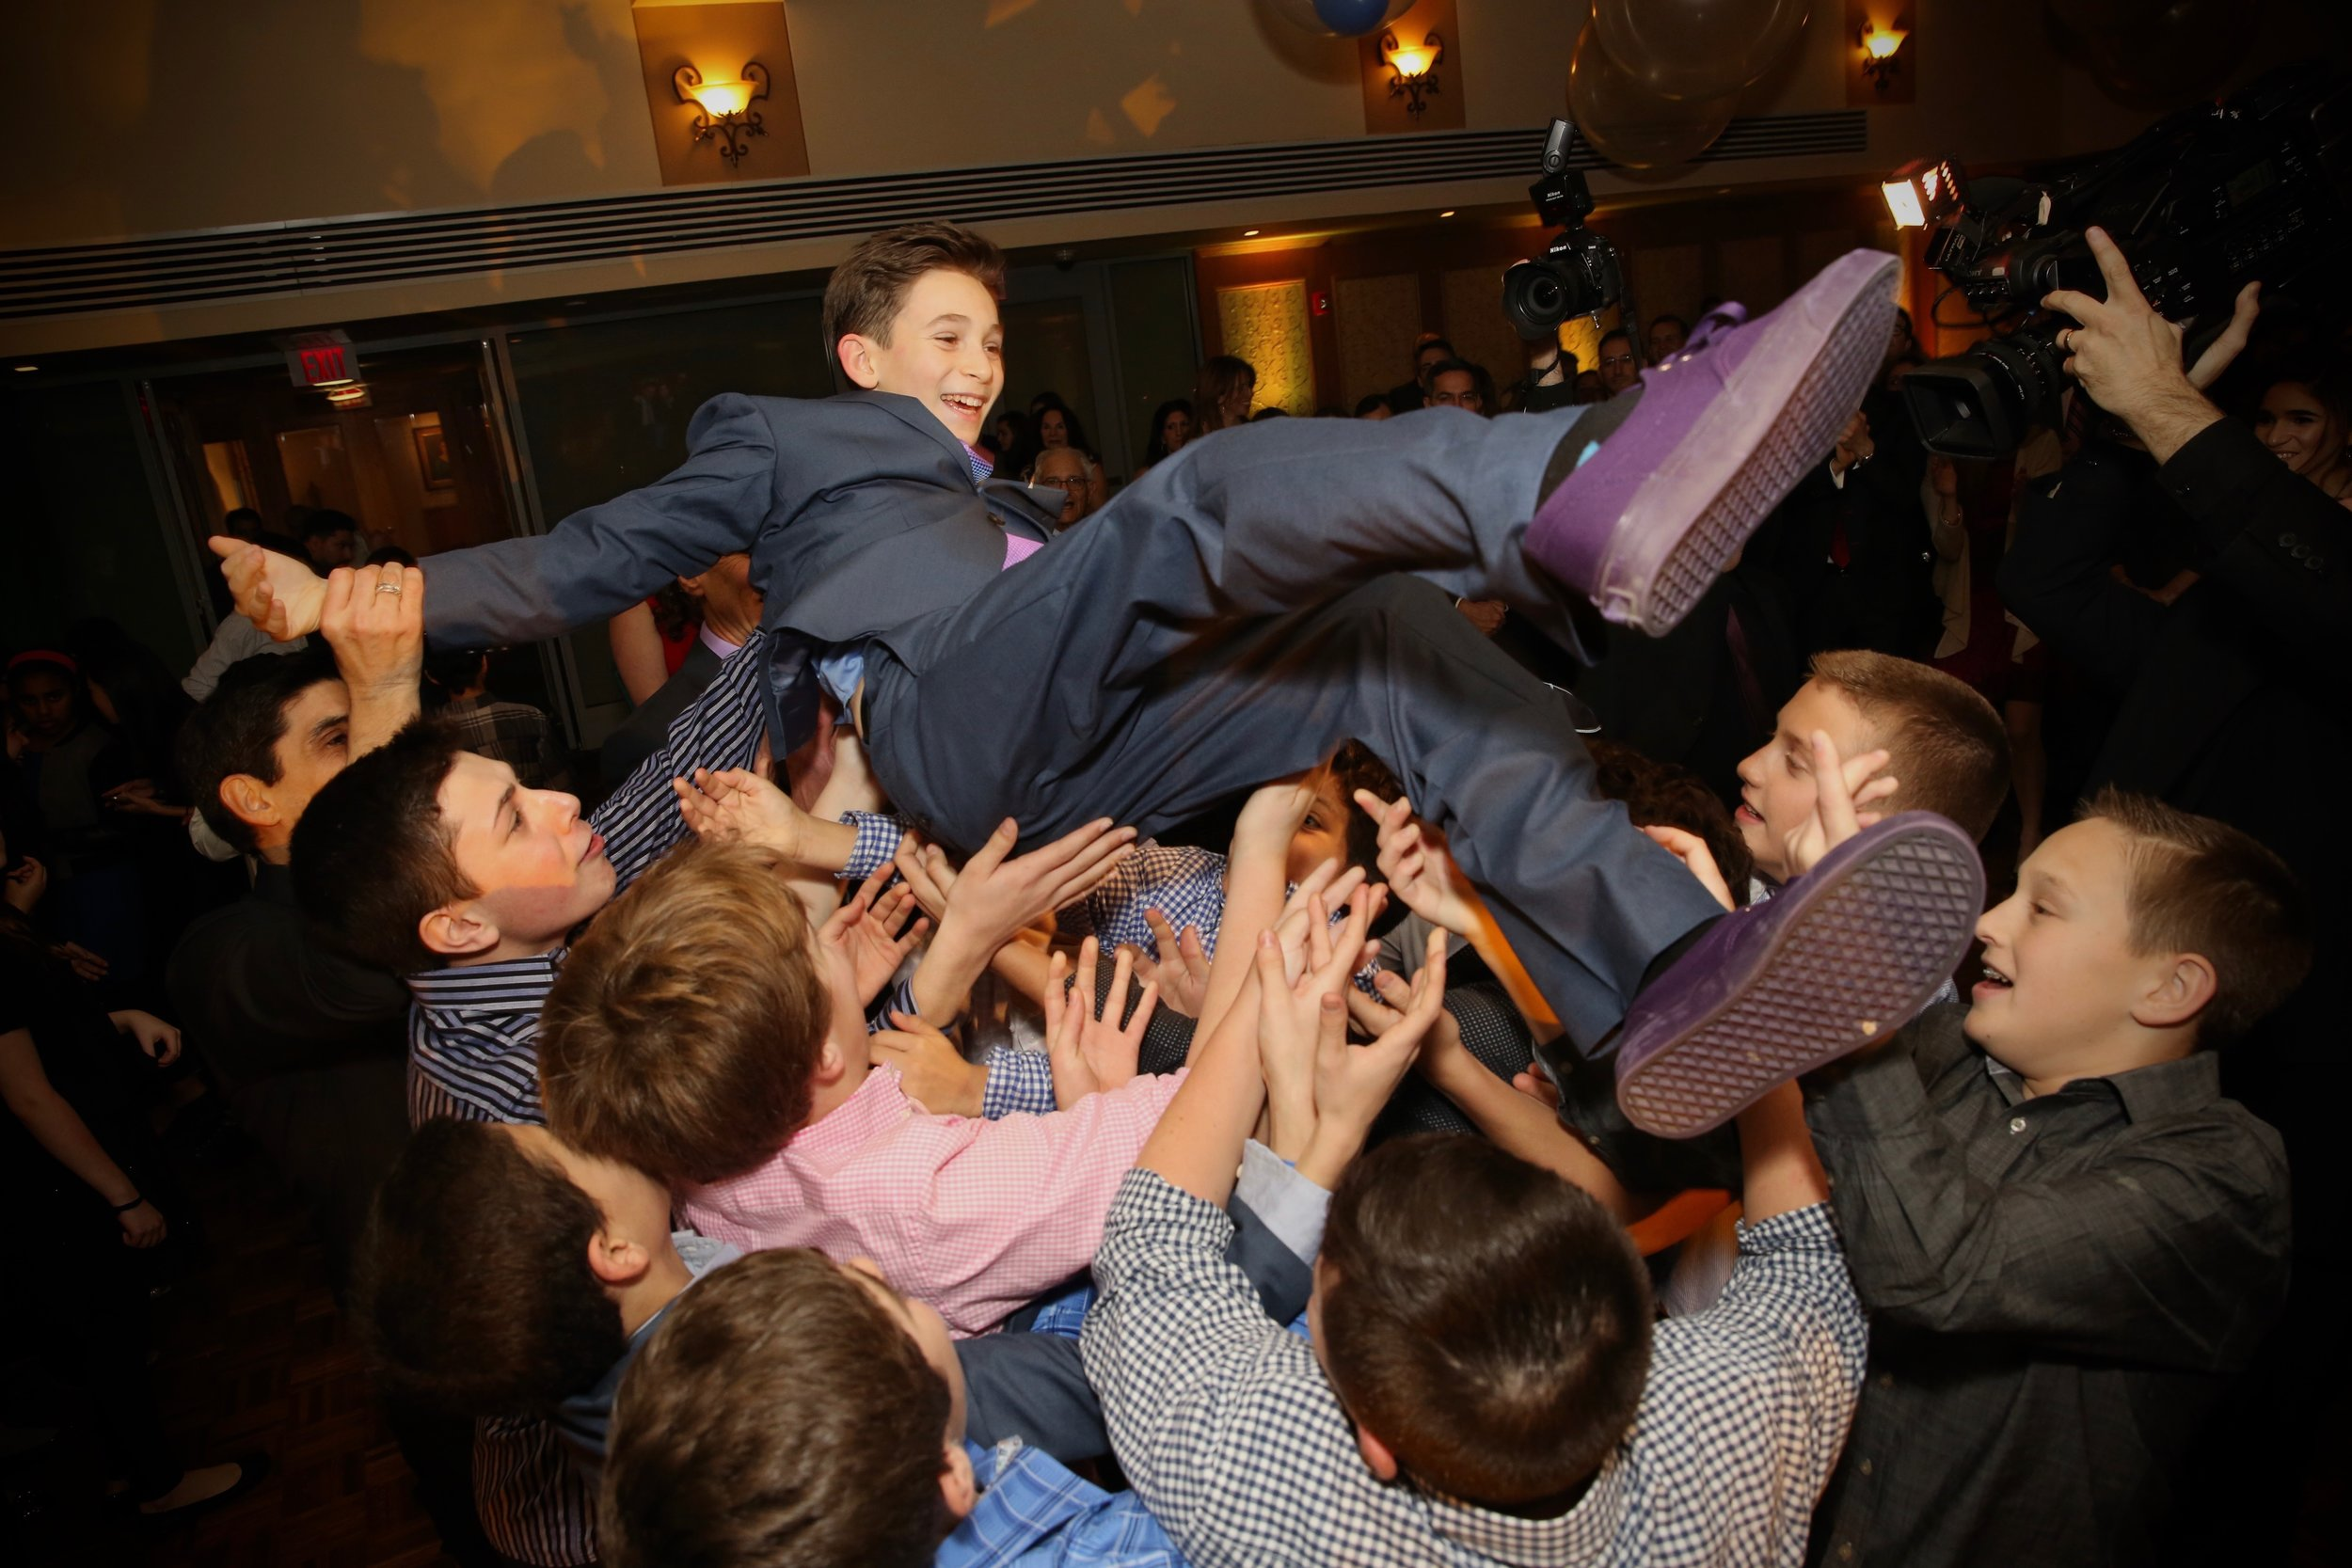 Bar Mitzvah Celebration at Temple Beth El of Great Neck